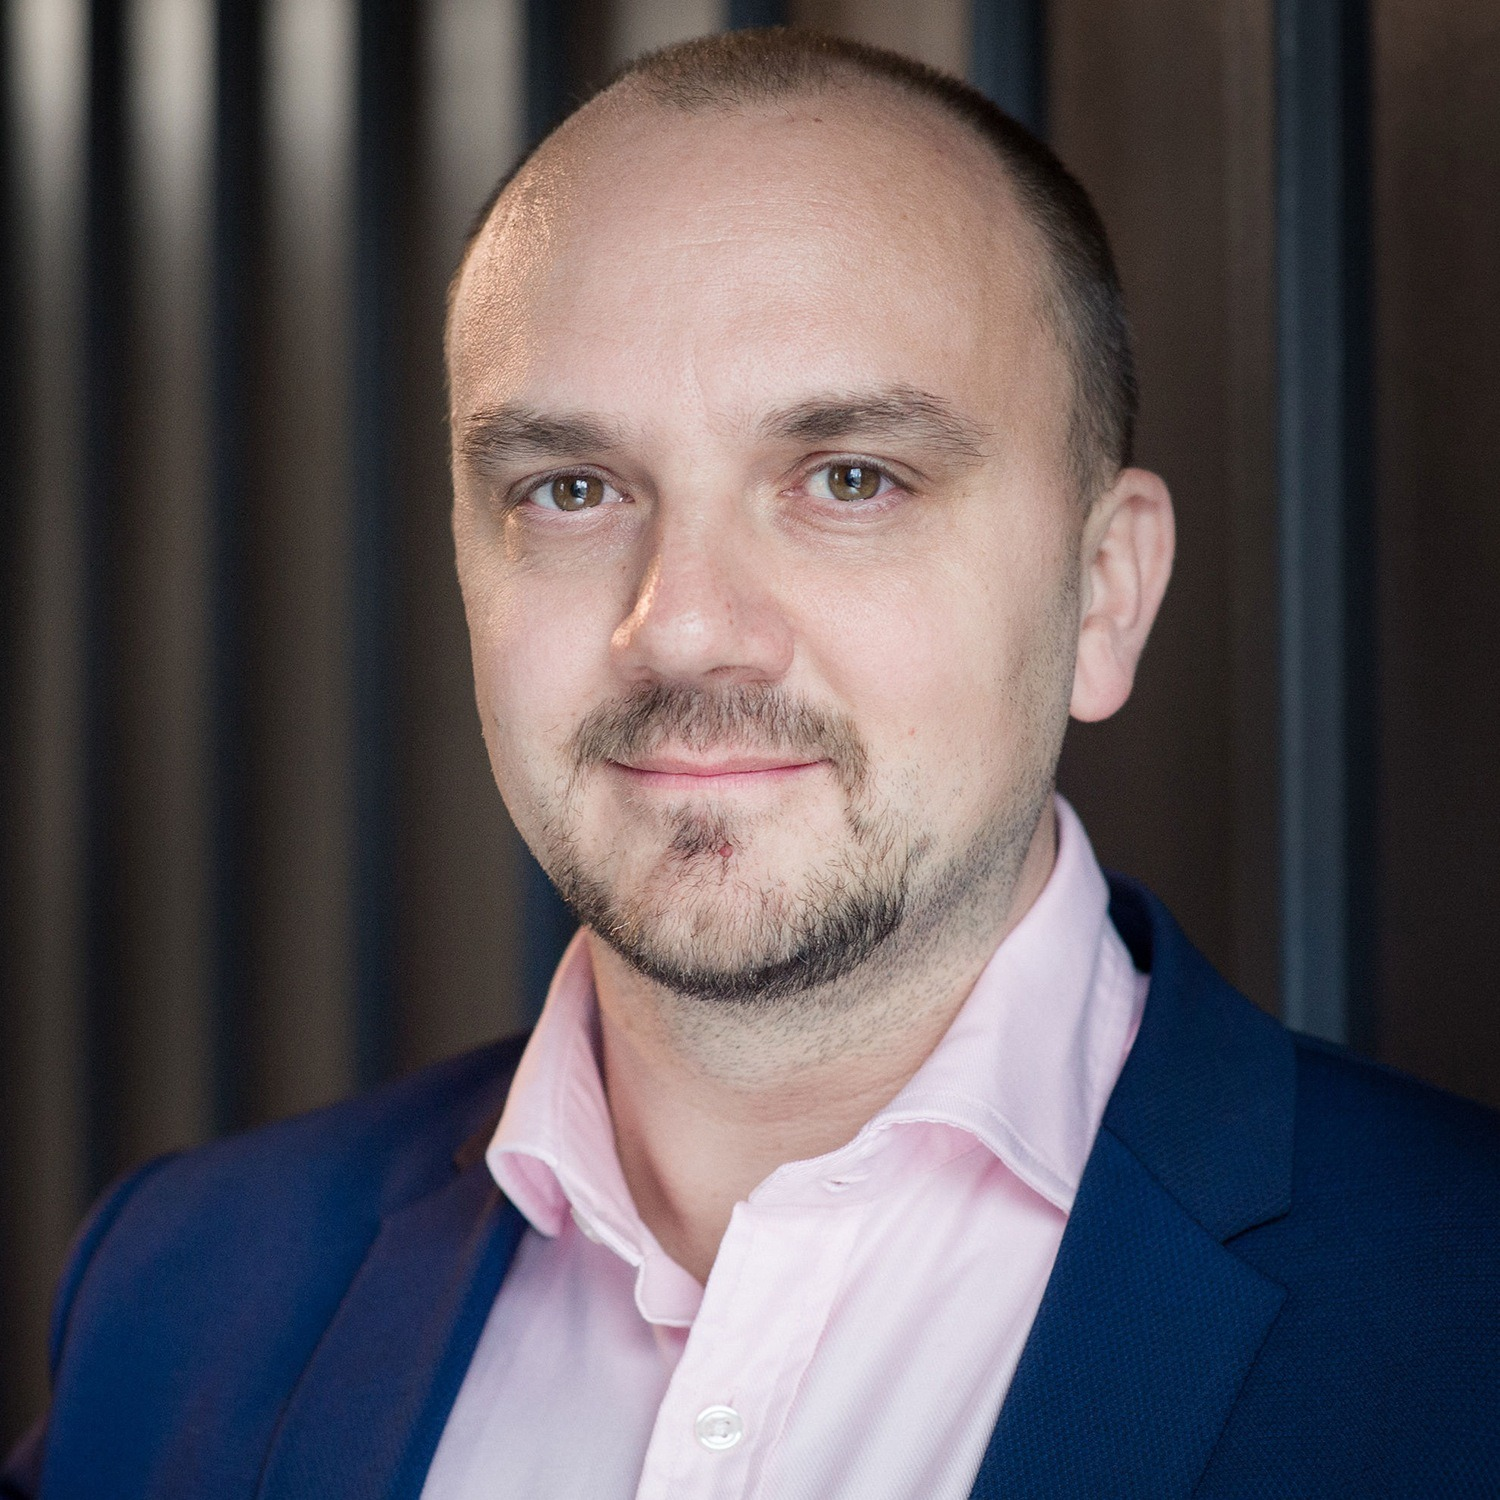 Zdenek Burda Chief Technology Officer